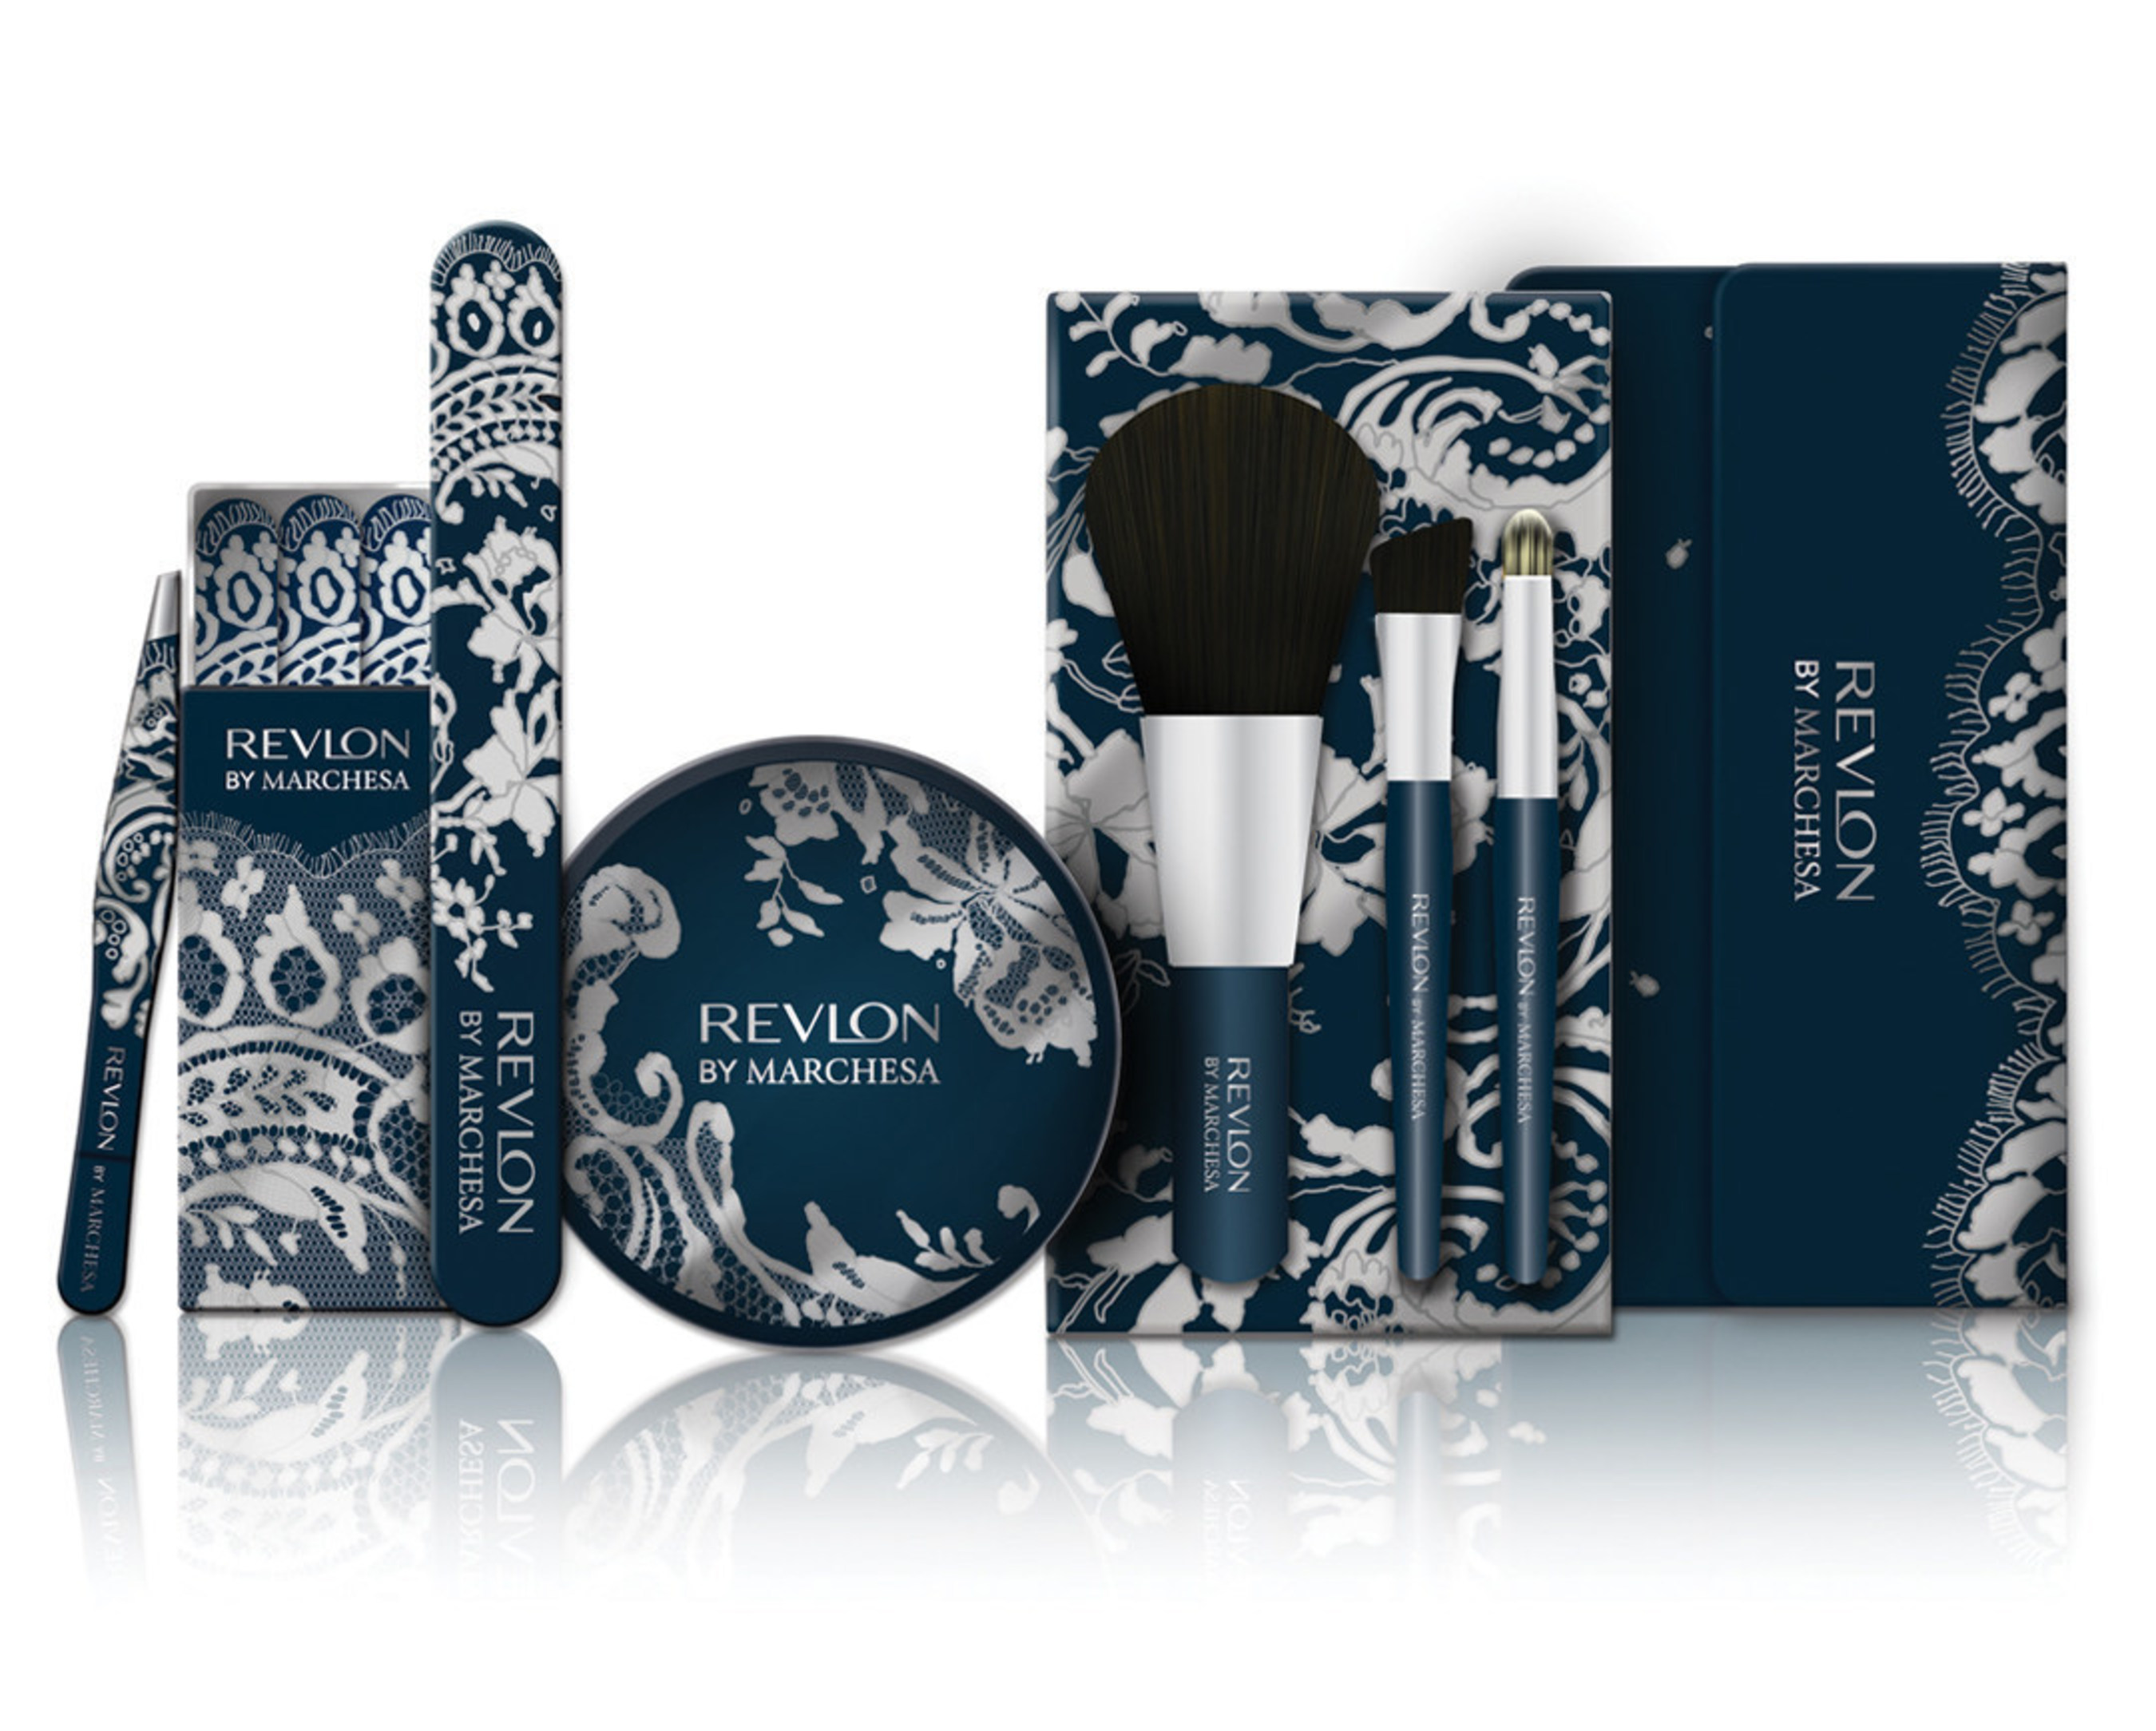 Revlon Beauty Tools - Marchesa Collection, Design: Anthem (New York)